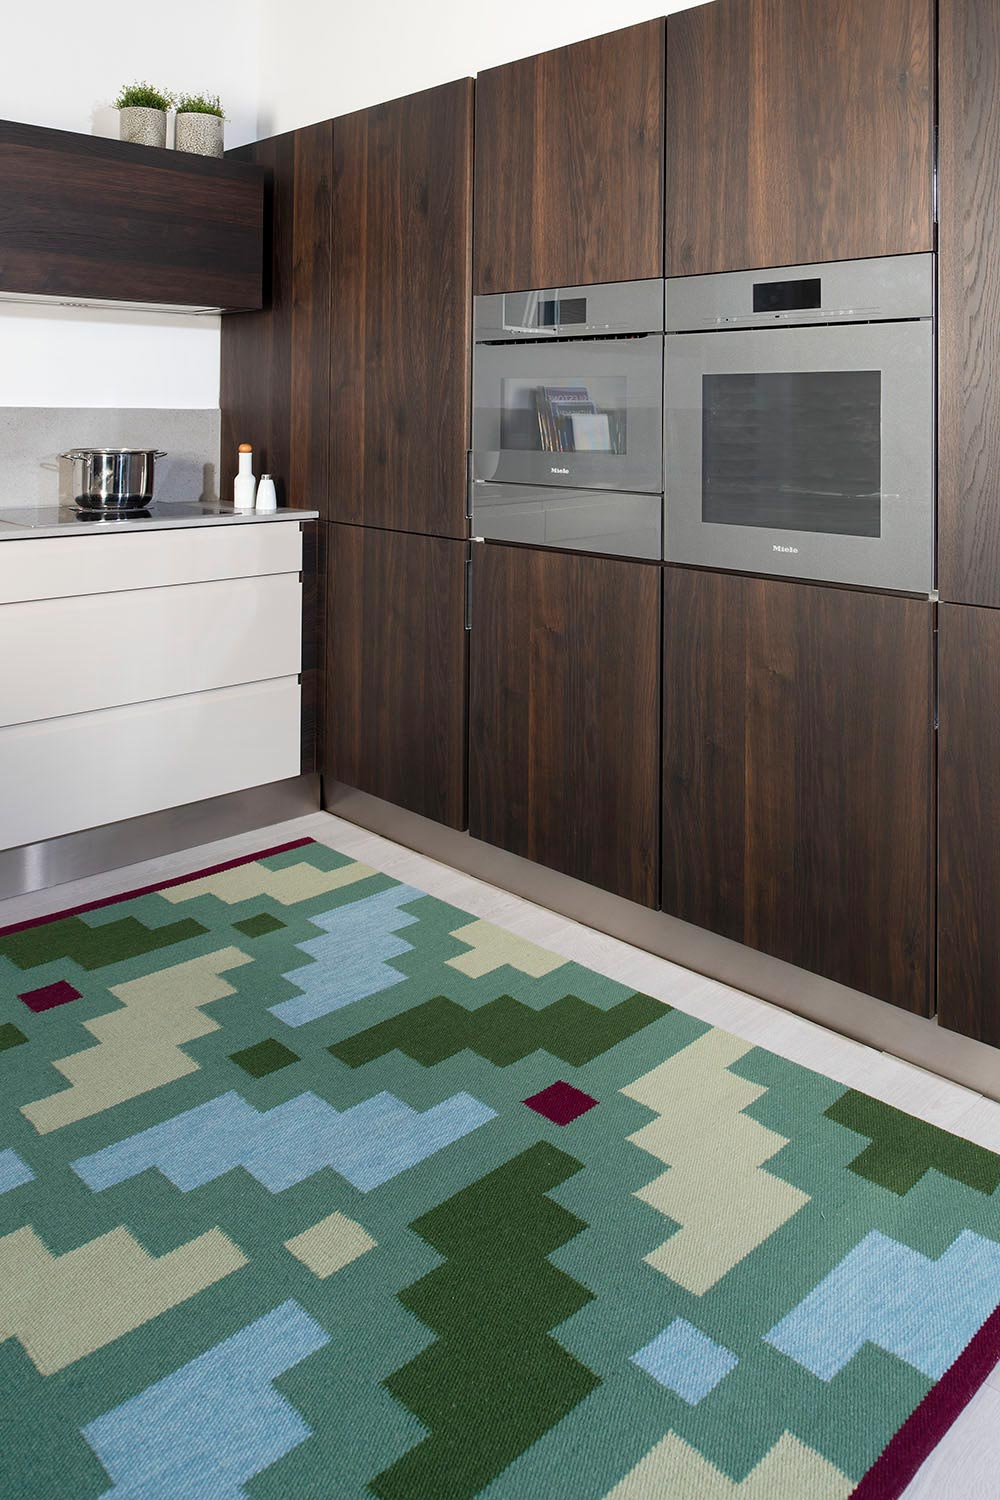 handwoven green patterned kilim type wool rug at a kitchen